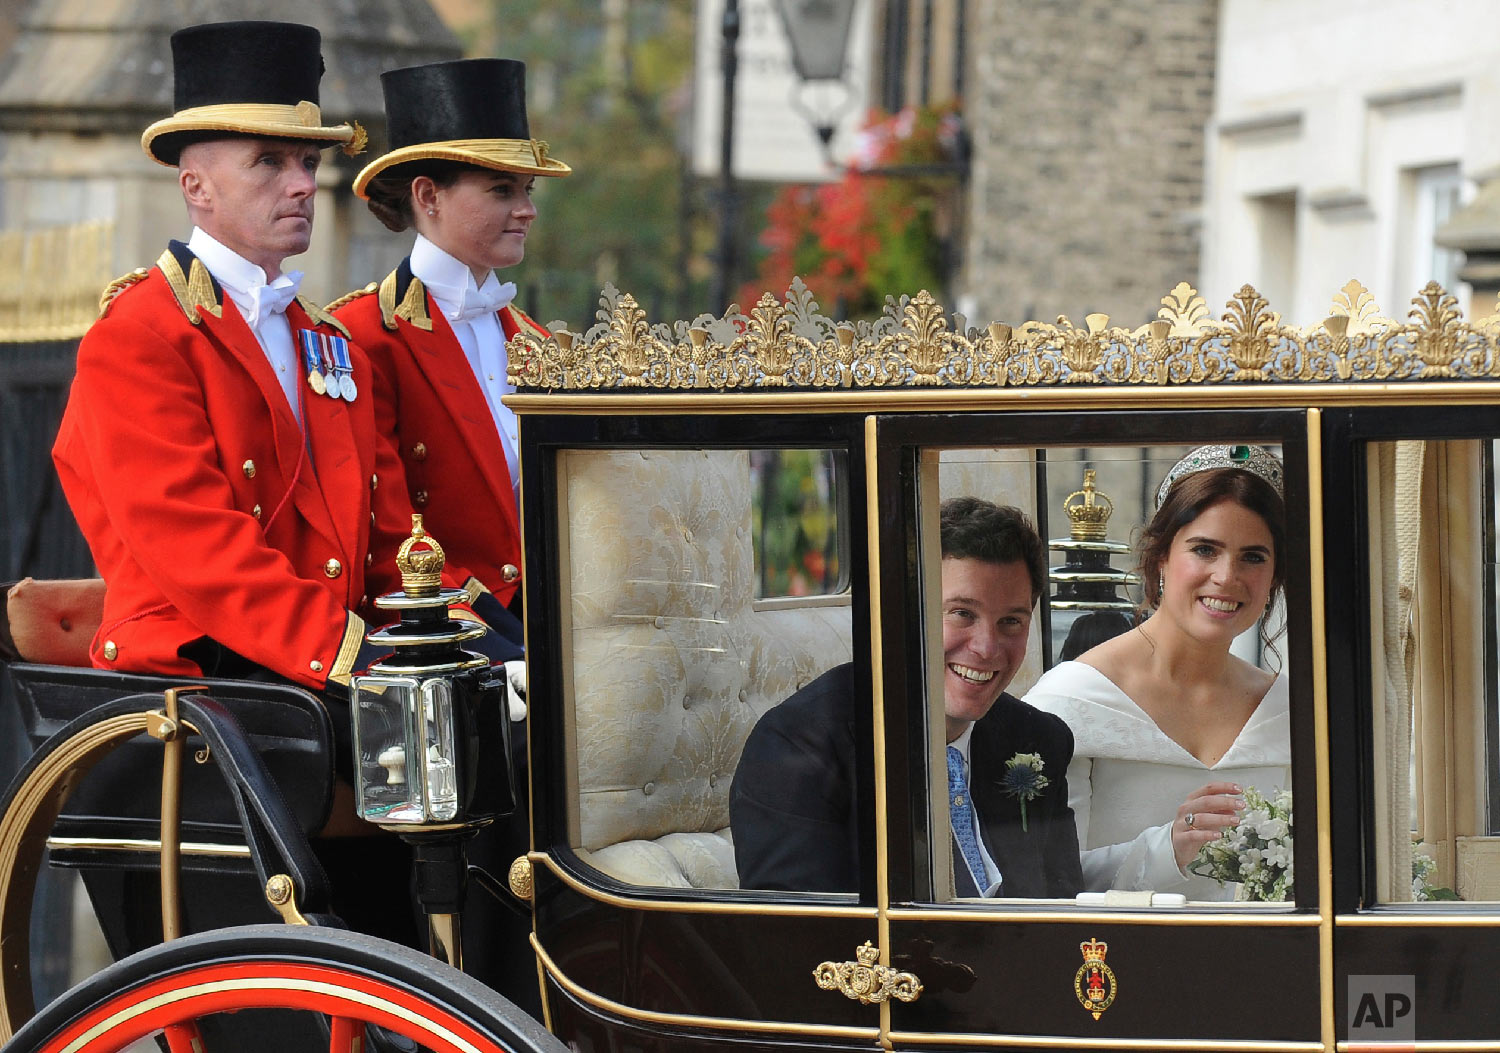 Princess Eugenie of York, right, and Jack Brooksbank look out from their carriage as they travel from St. George's Chapel to Windsor Castle after their wedding in Windsor, England, near London, on Oct. 12, 2018. (AP Photo/Rui Vieira)